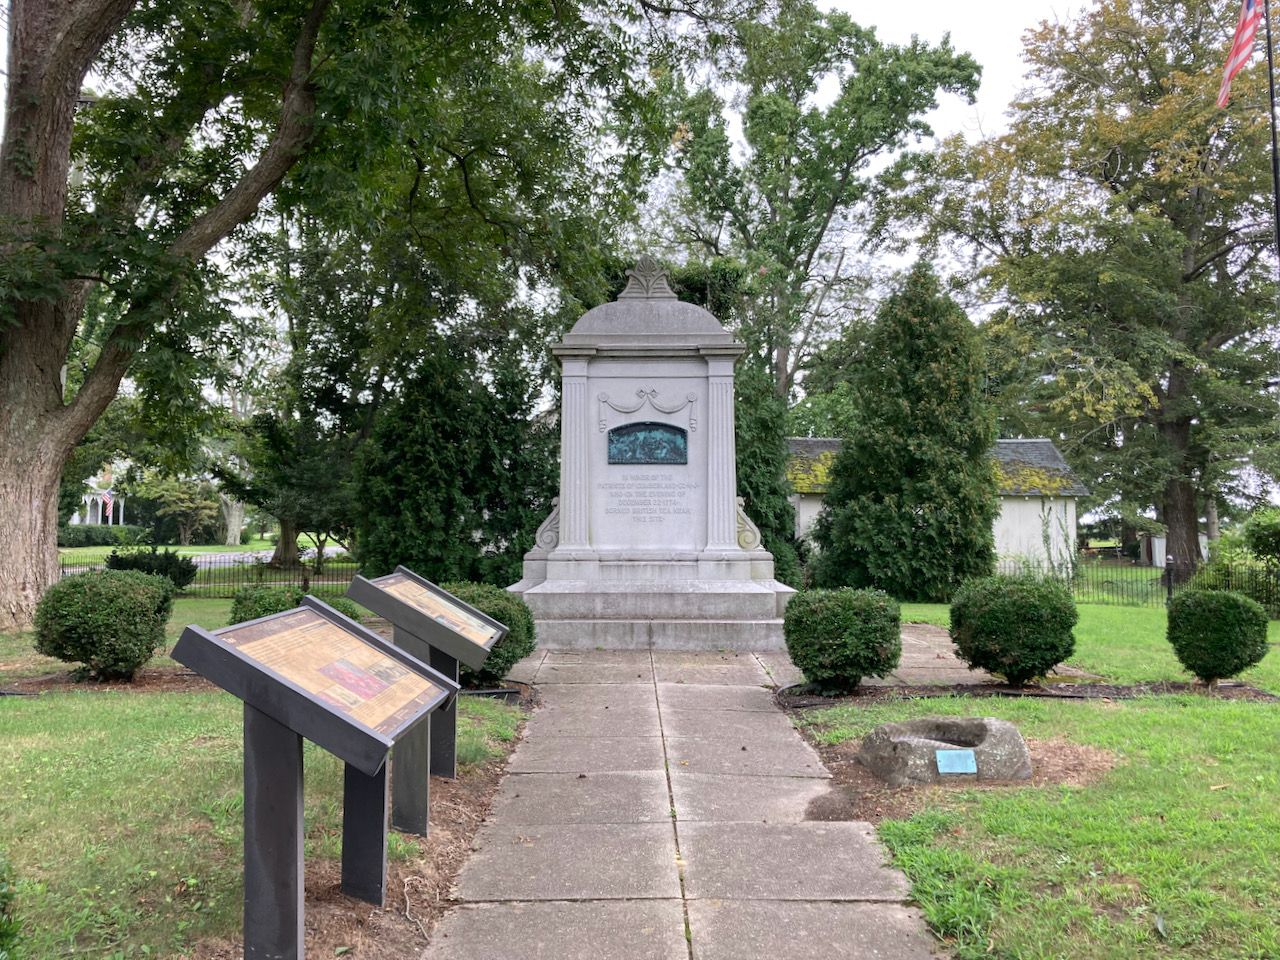 Small park with monument to NJ Tea Party.